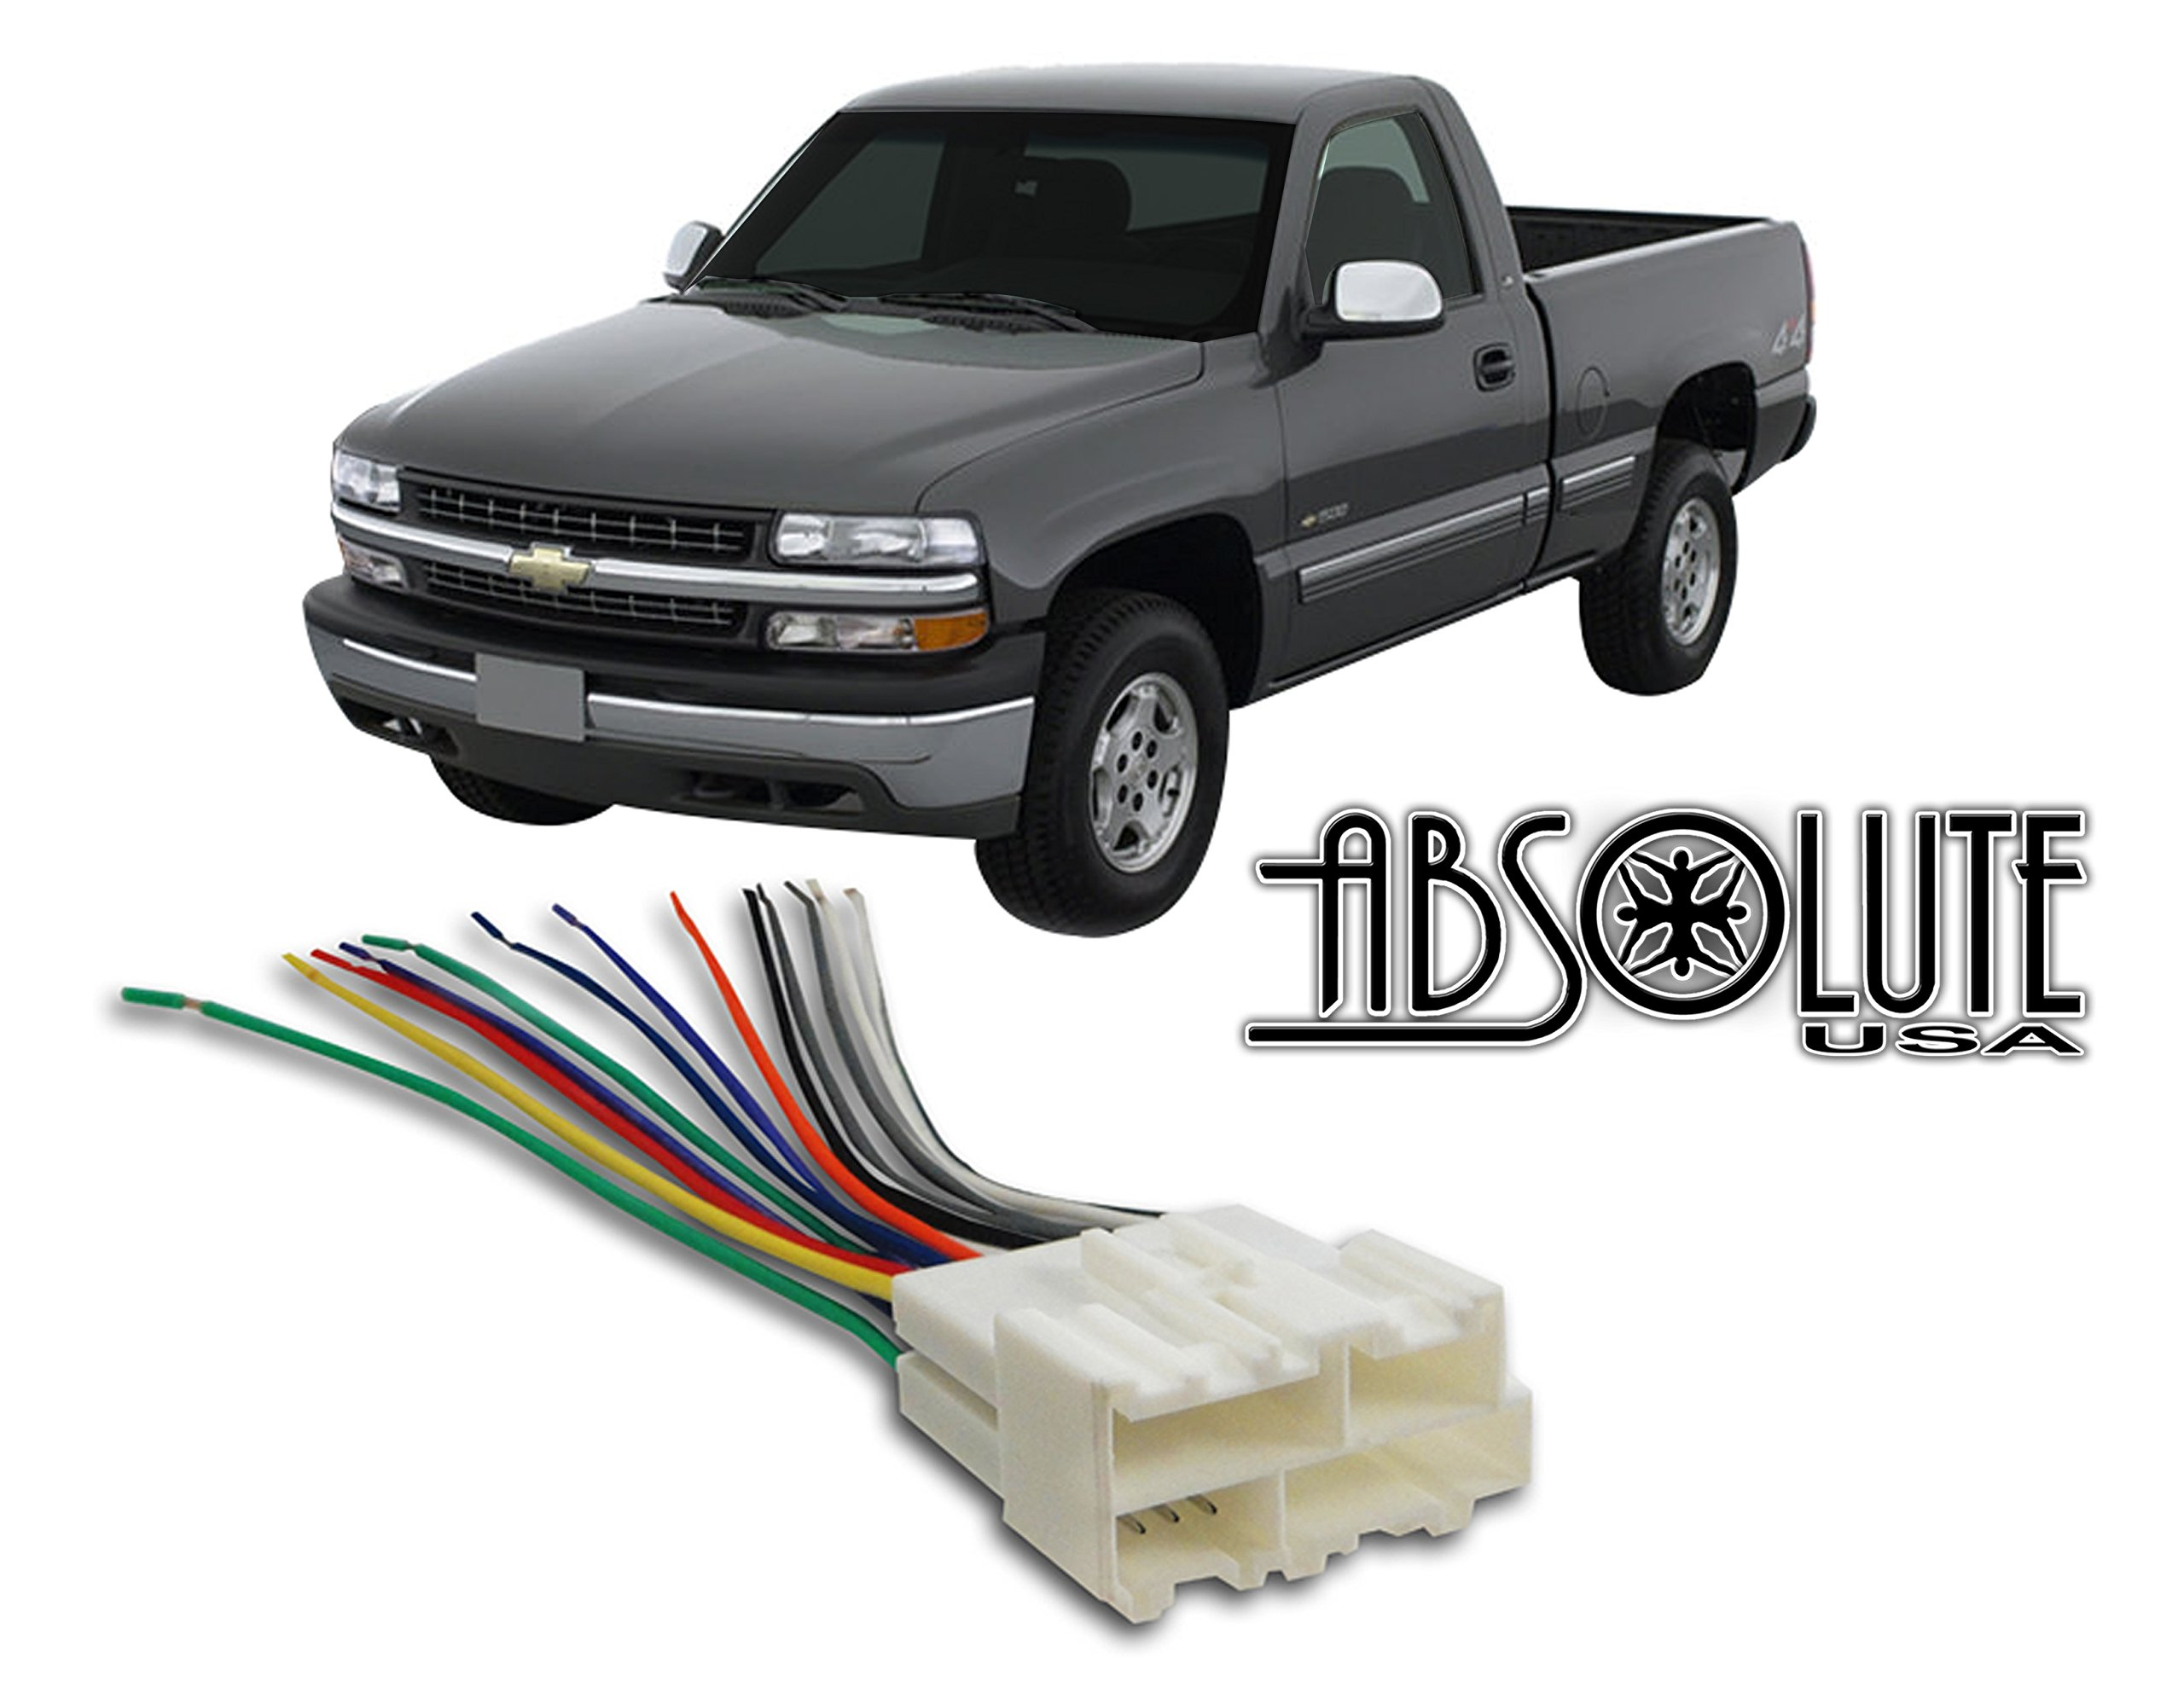 HTB1RrTCQVXaOaq6xXFb Radio Wiring Harness Chevy Silverado on cobalt headlight, vega painless, silverado fog light, truck alternator, silverado chassis,